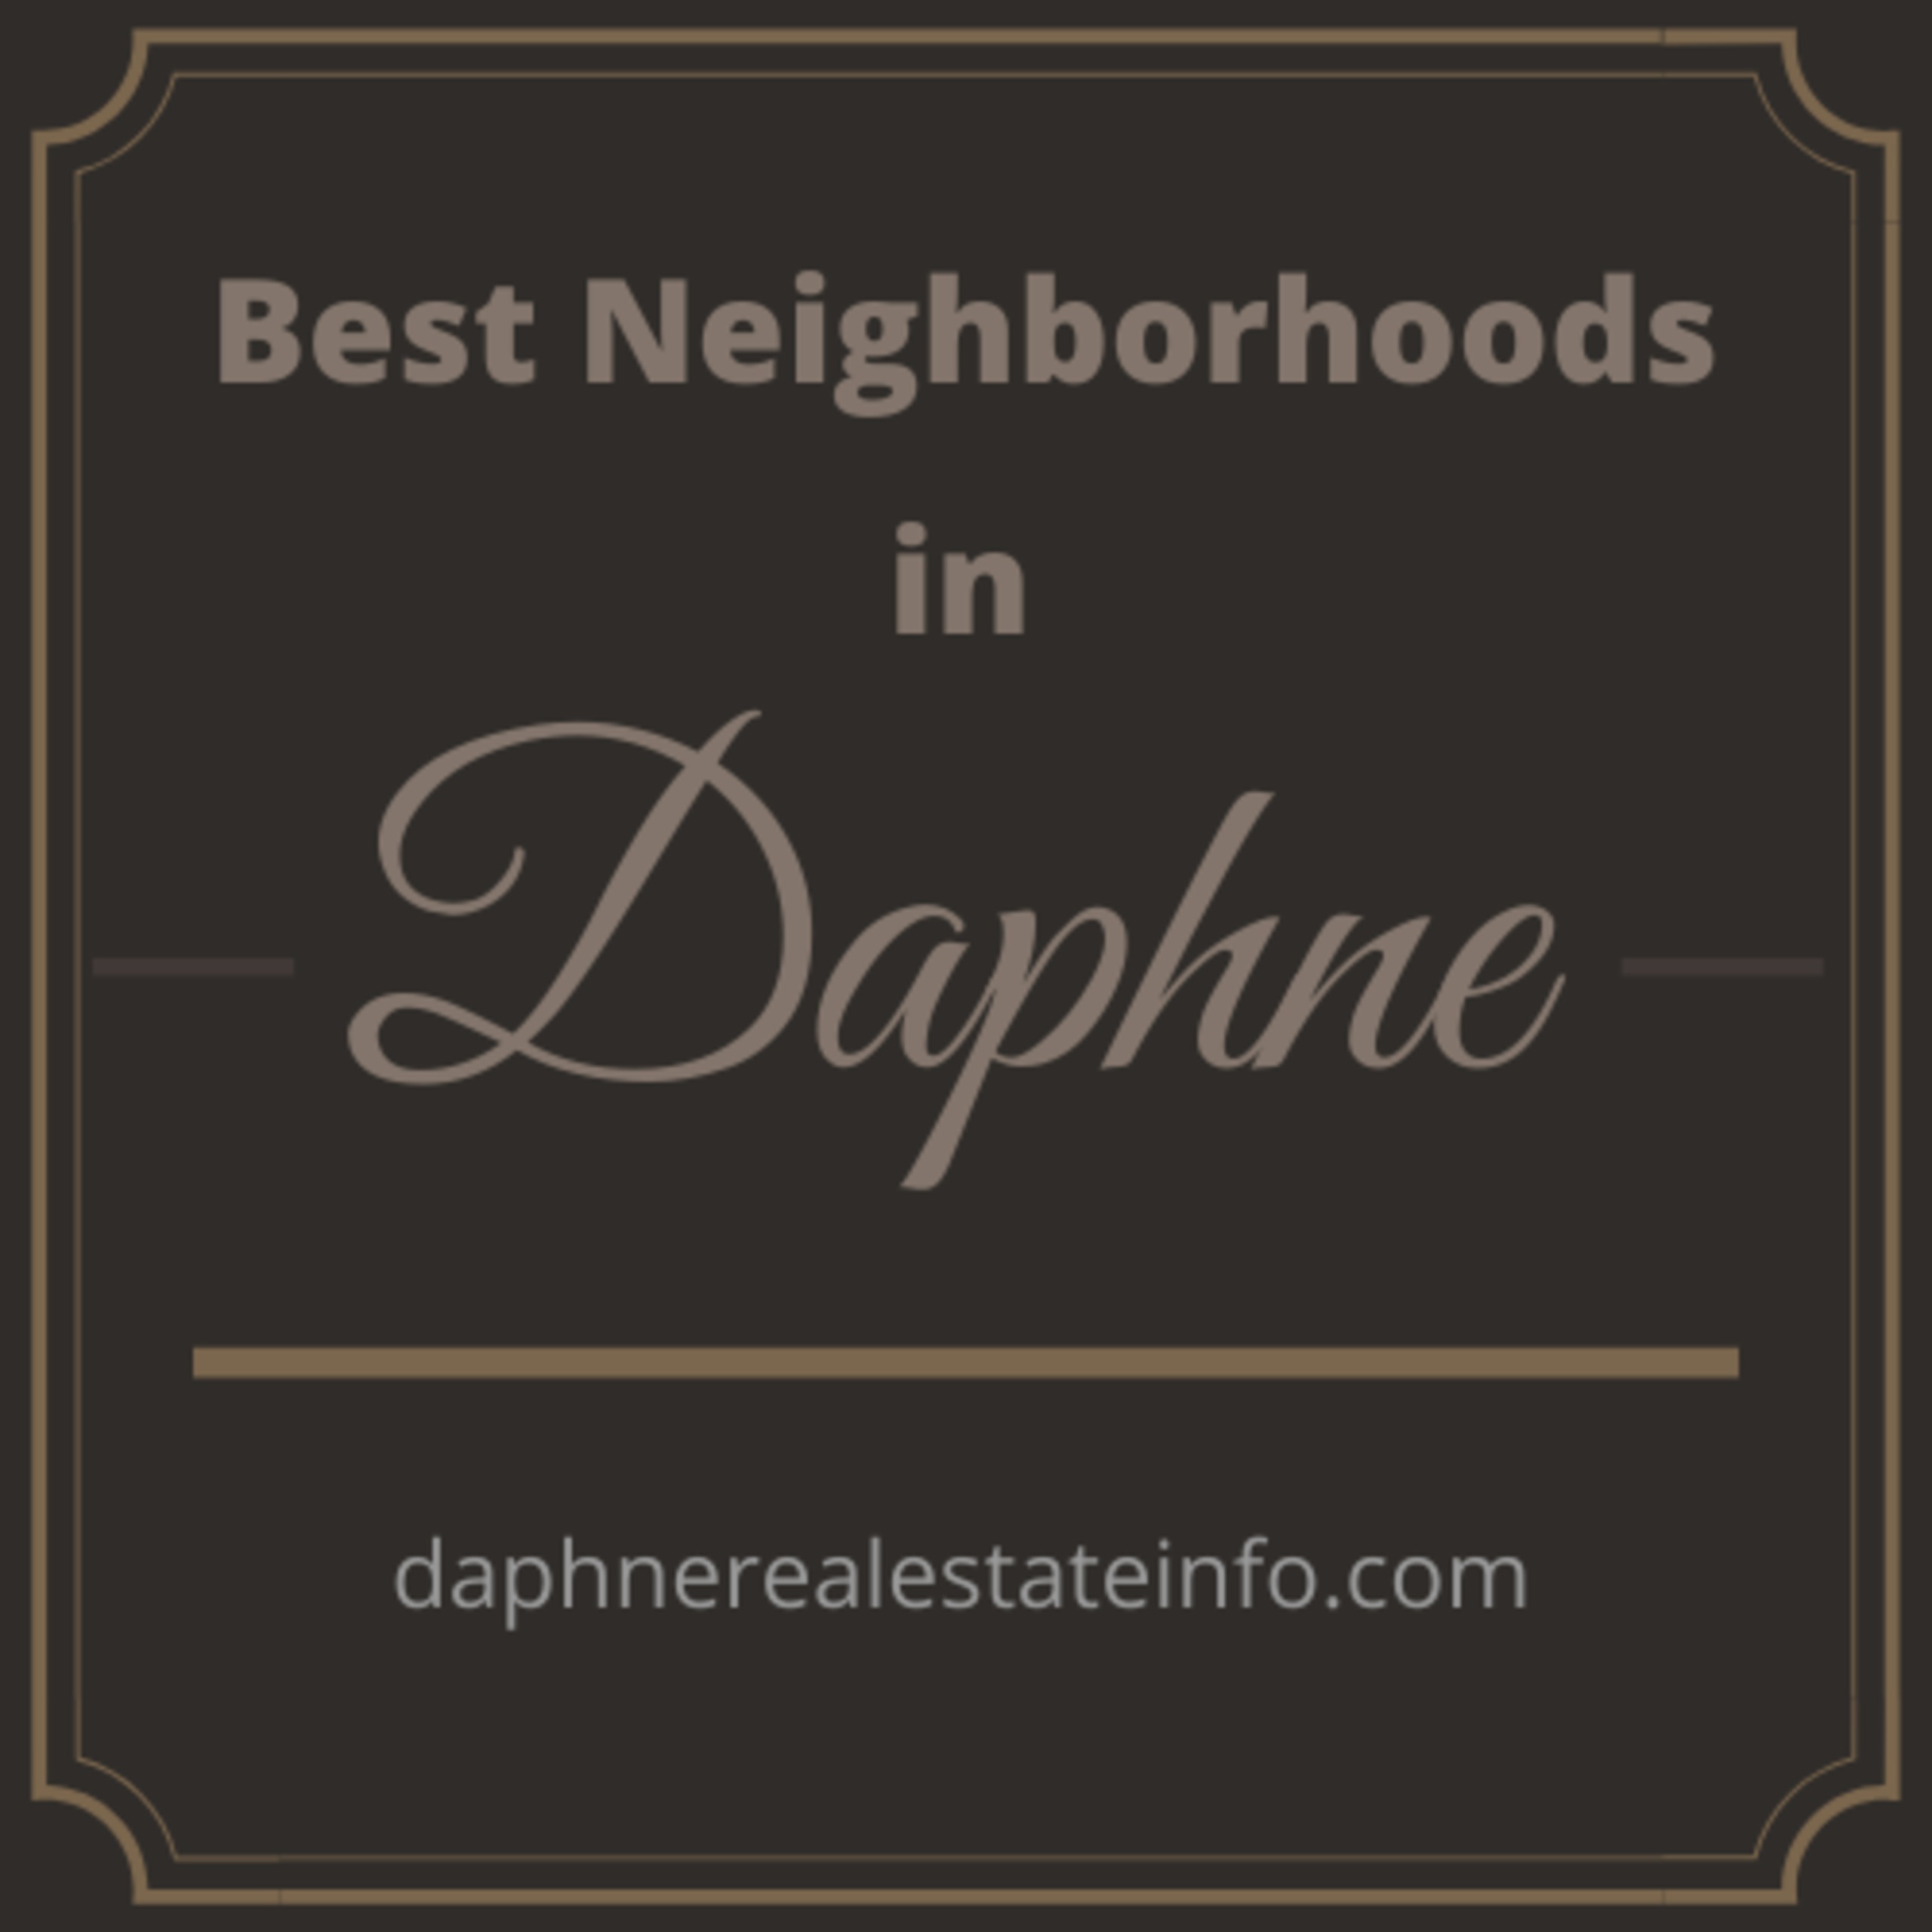 Best Neighborhoods in Daphne AL